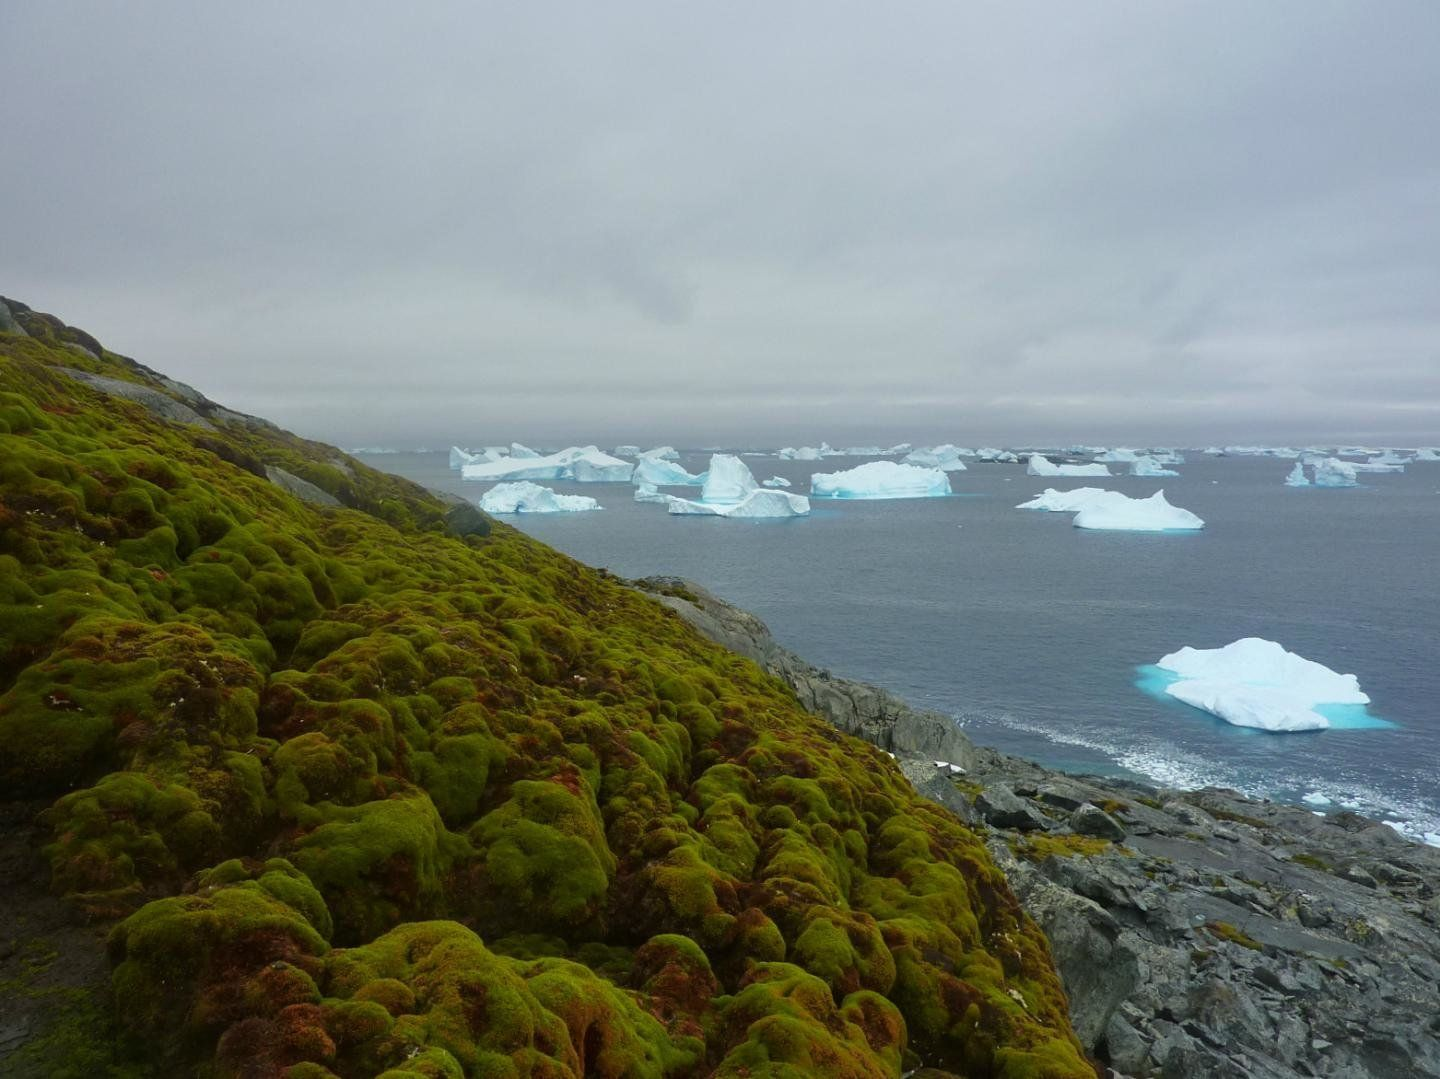 Moss, as seen on this bank on Green Island in the Antarctic Peninsula, has been growing in the region at a dramatic